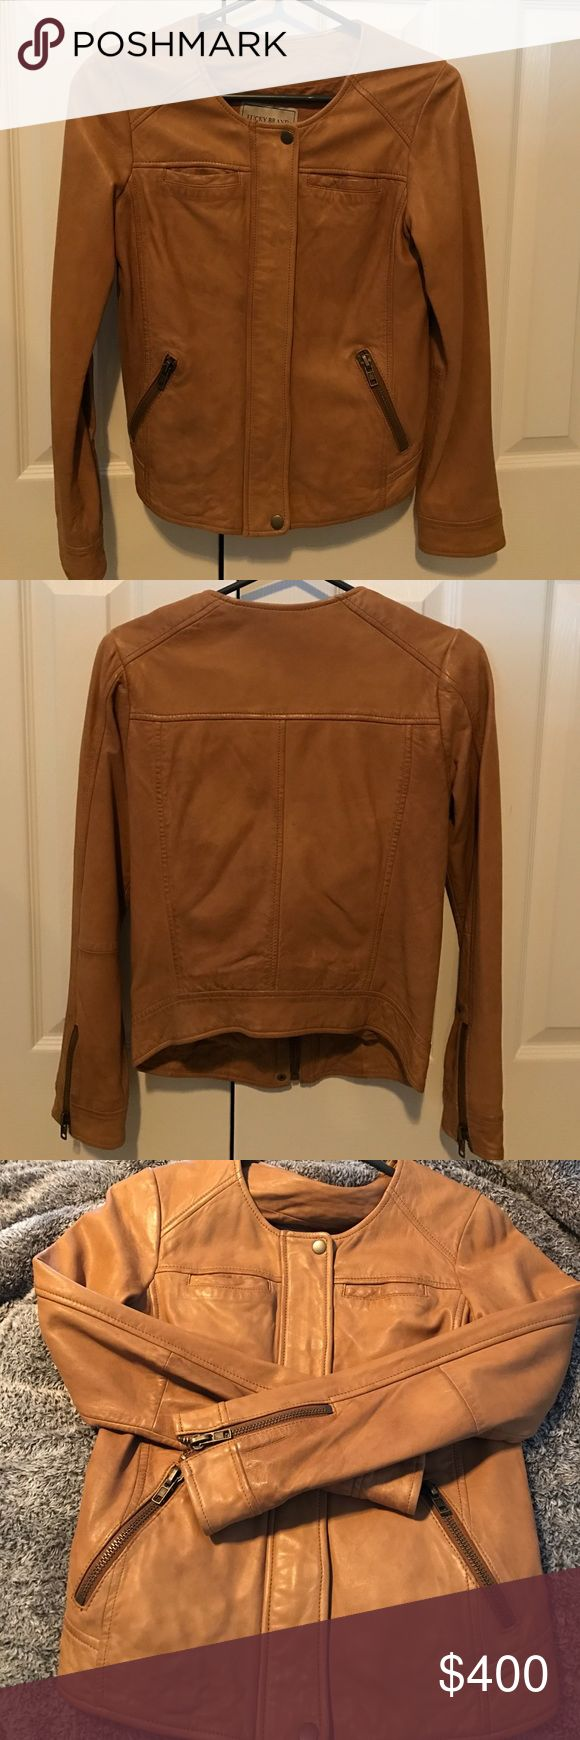 Lucky Brand camel leather bomber jacket NWT XS Gorgeous buttery soft leather bomber Jack with zip up front and snap closures. Zipper cuffs and front zip pockets. This jacket is brand new with tags attached. Just gorgeous!!!! Lucky Brand Jackets & Coats